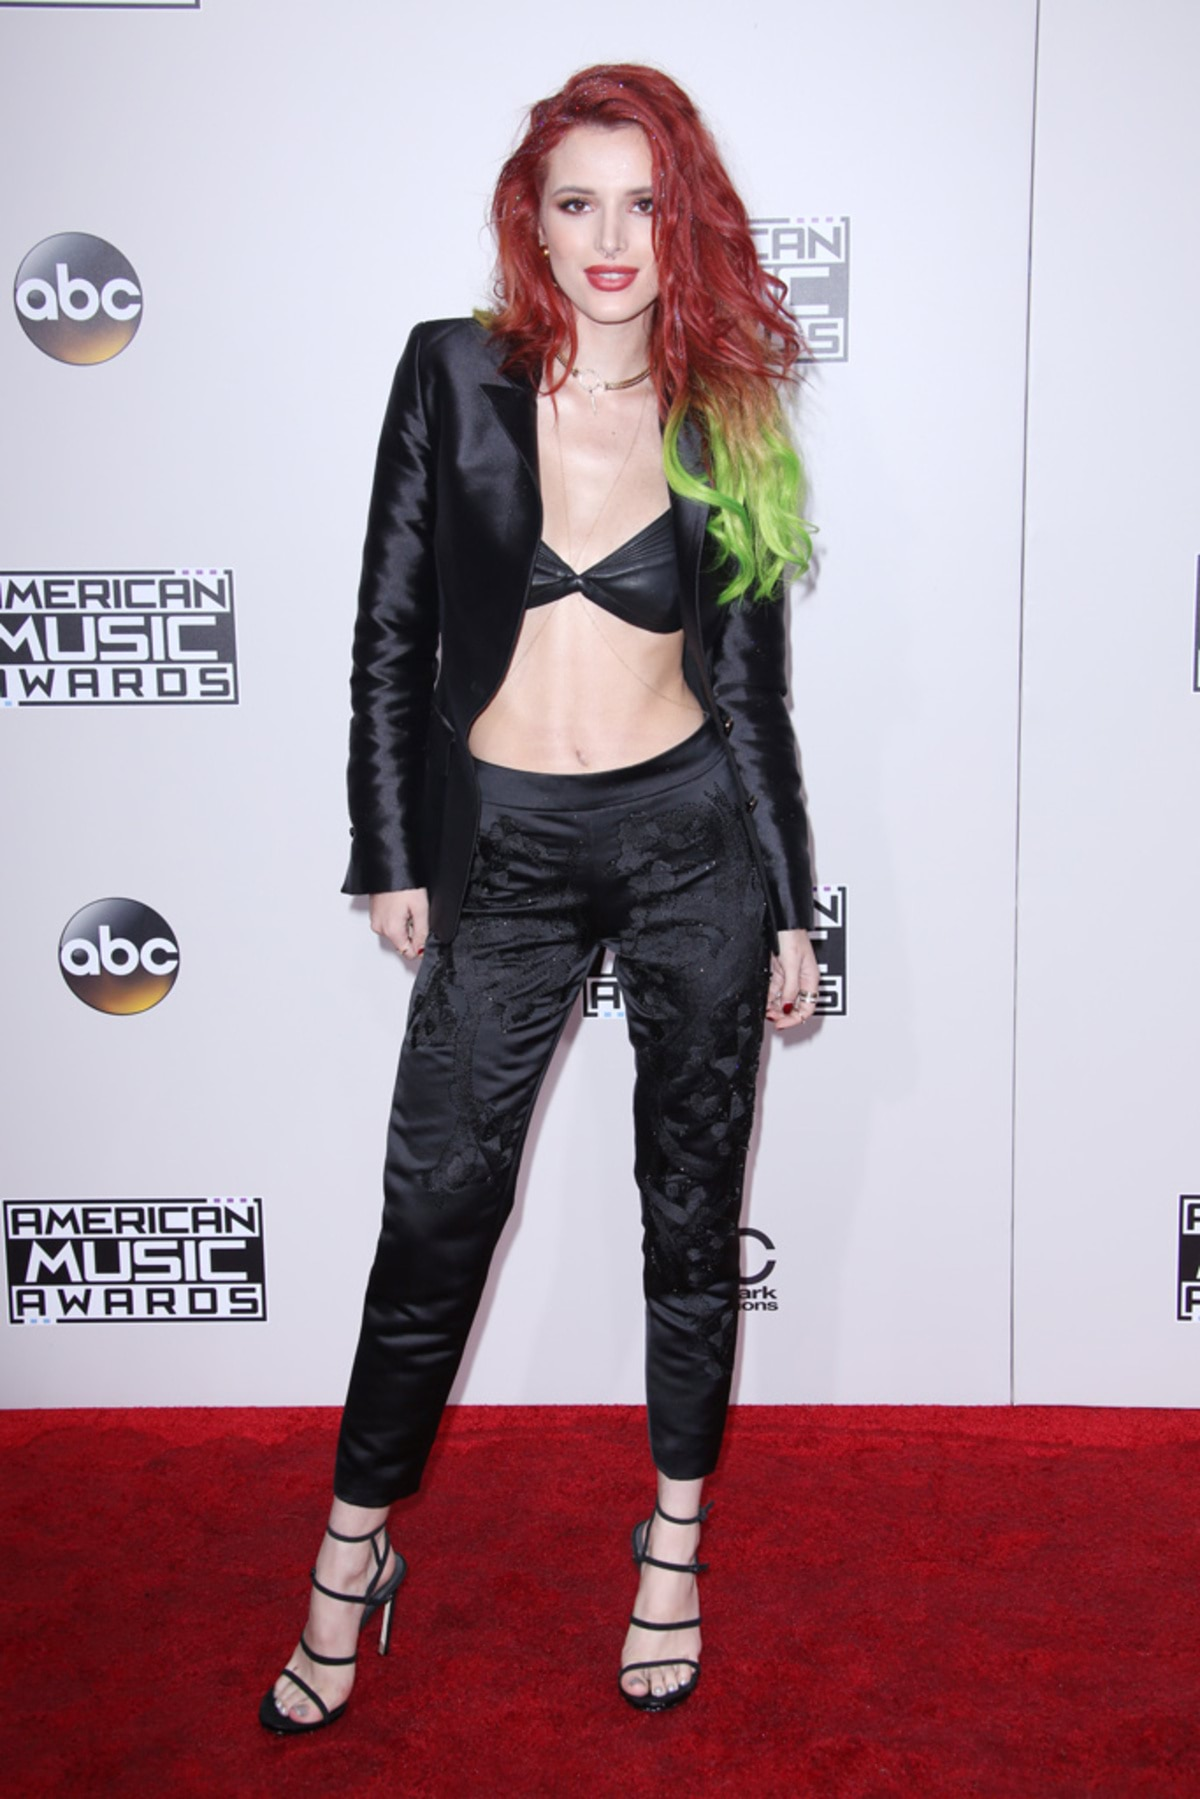 bella-thorne-american-music-awards